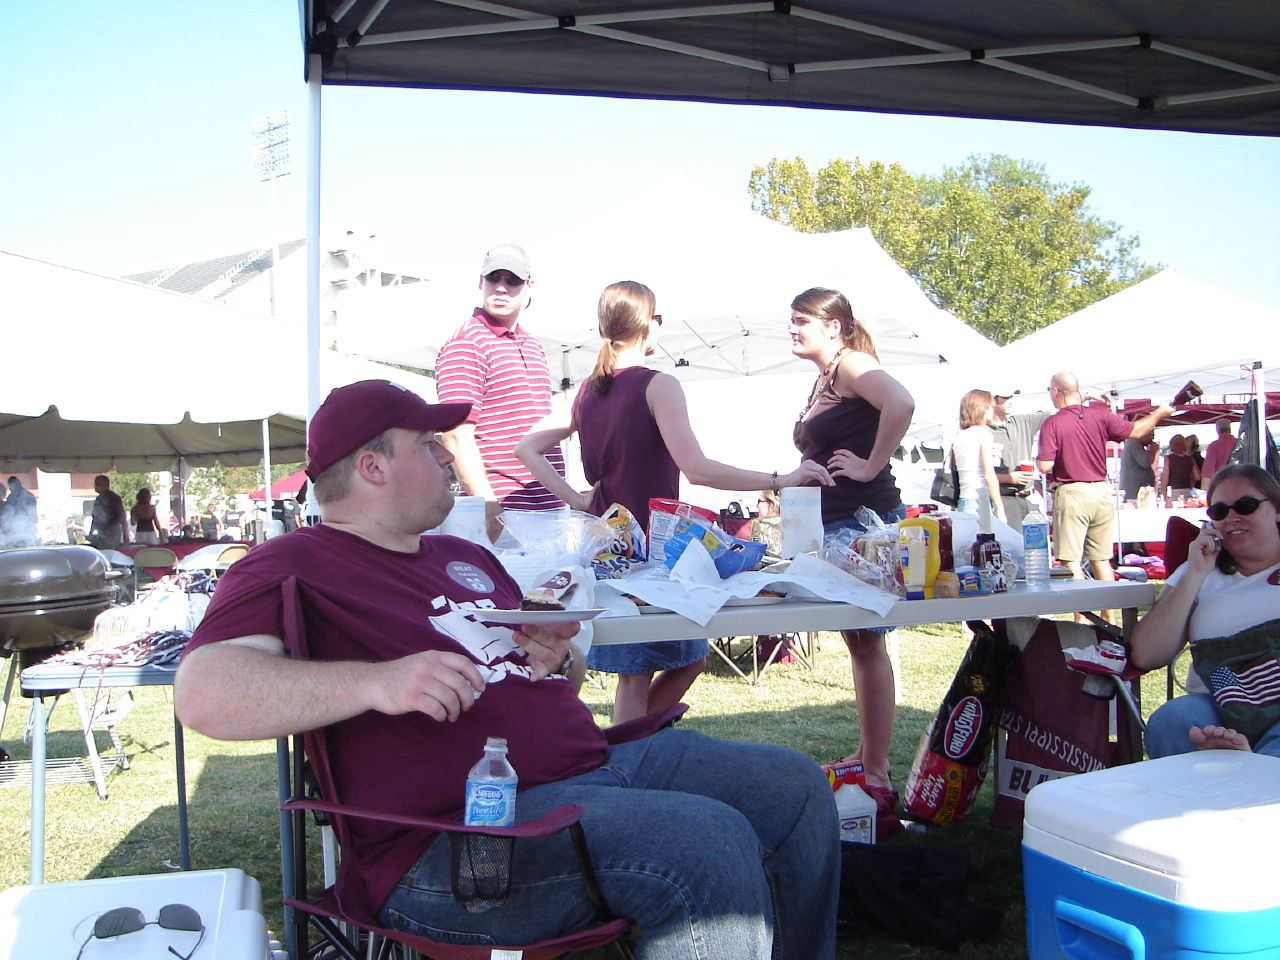 Best Canopy Tent For Tailgating & Best Canopy Tent For Tailgating u2013 Cassie Blake u2013 Medium